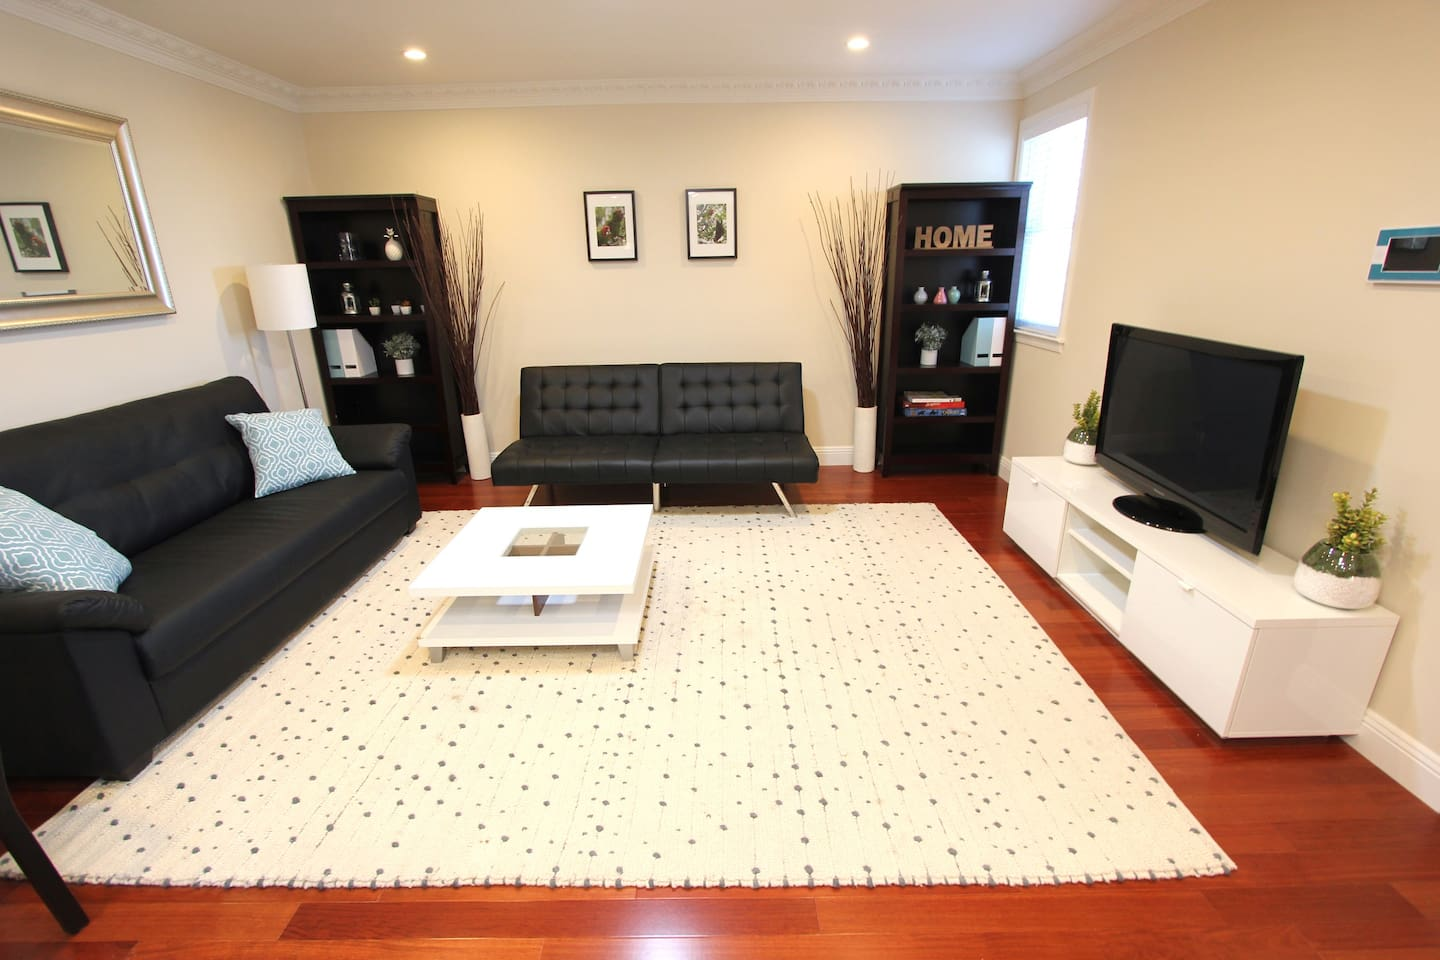 Living room - futon, couch, TV (Amazon Fire TV, no cable), coffee table